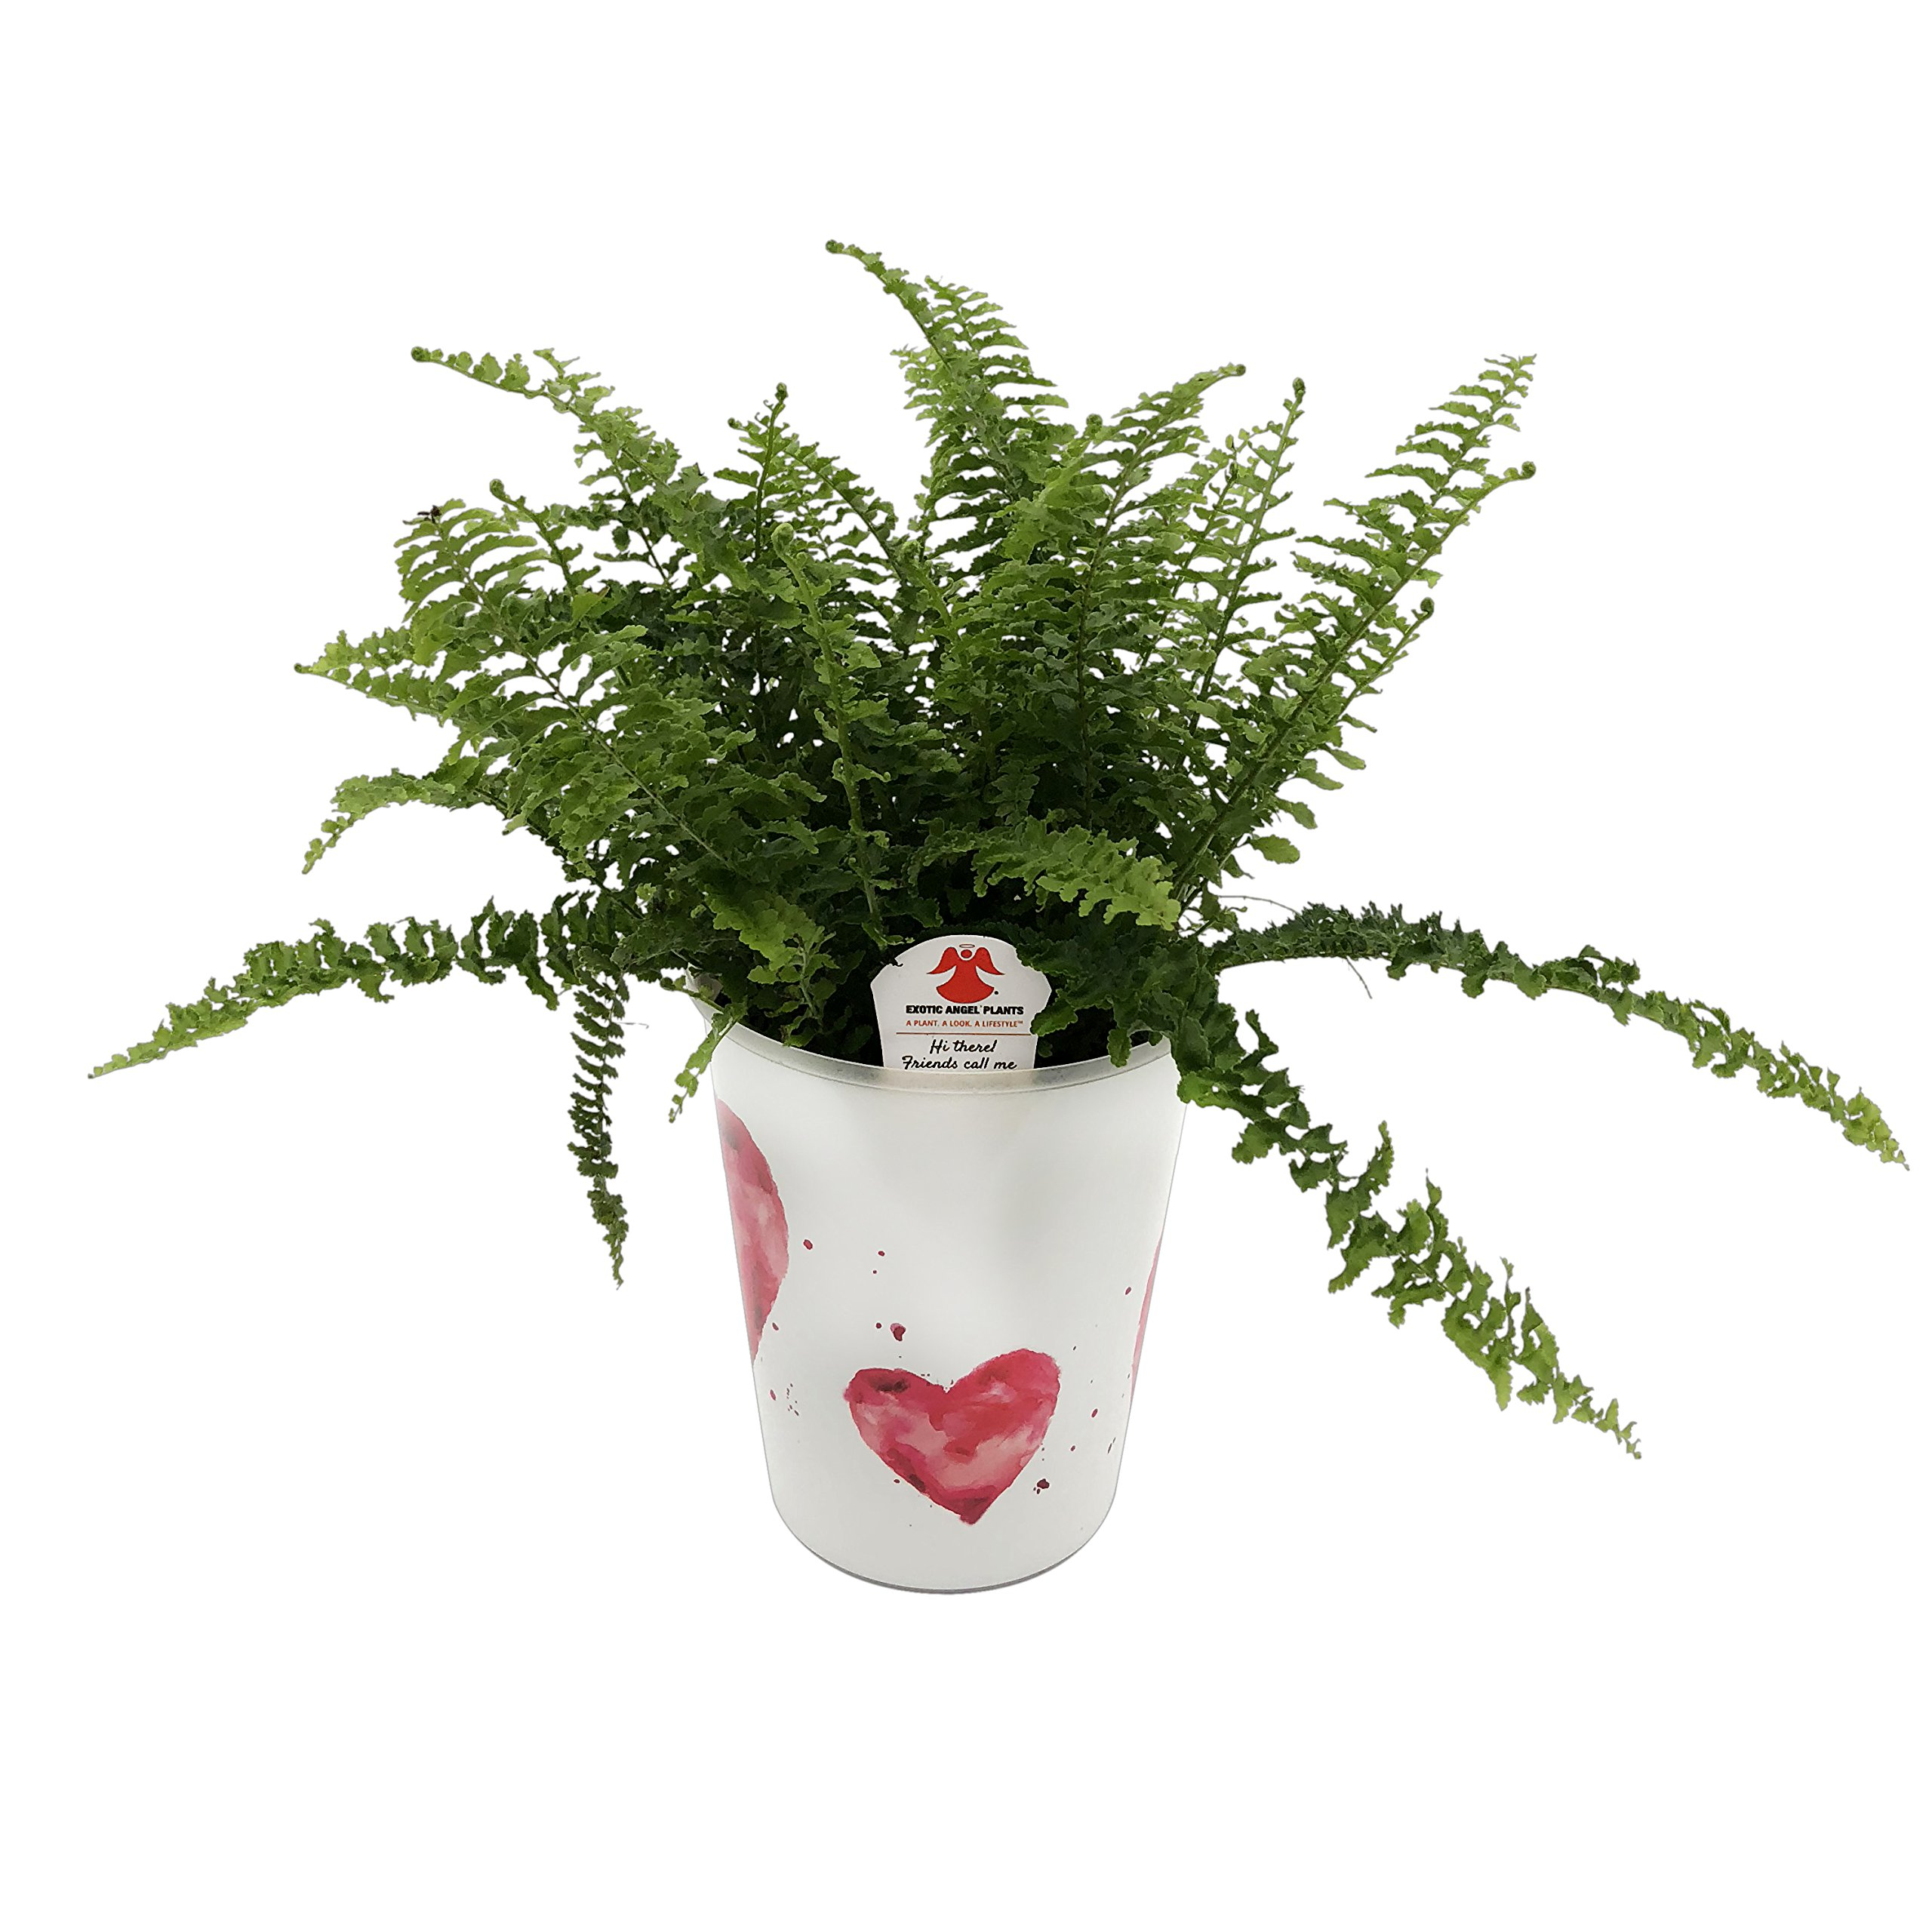 Costa Farms WaterWick Self-Watering Heart Design Planter w/ Premium Exotic Angel Live Indoor Love Fern Plant, 4.8-Inch Pot